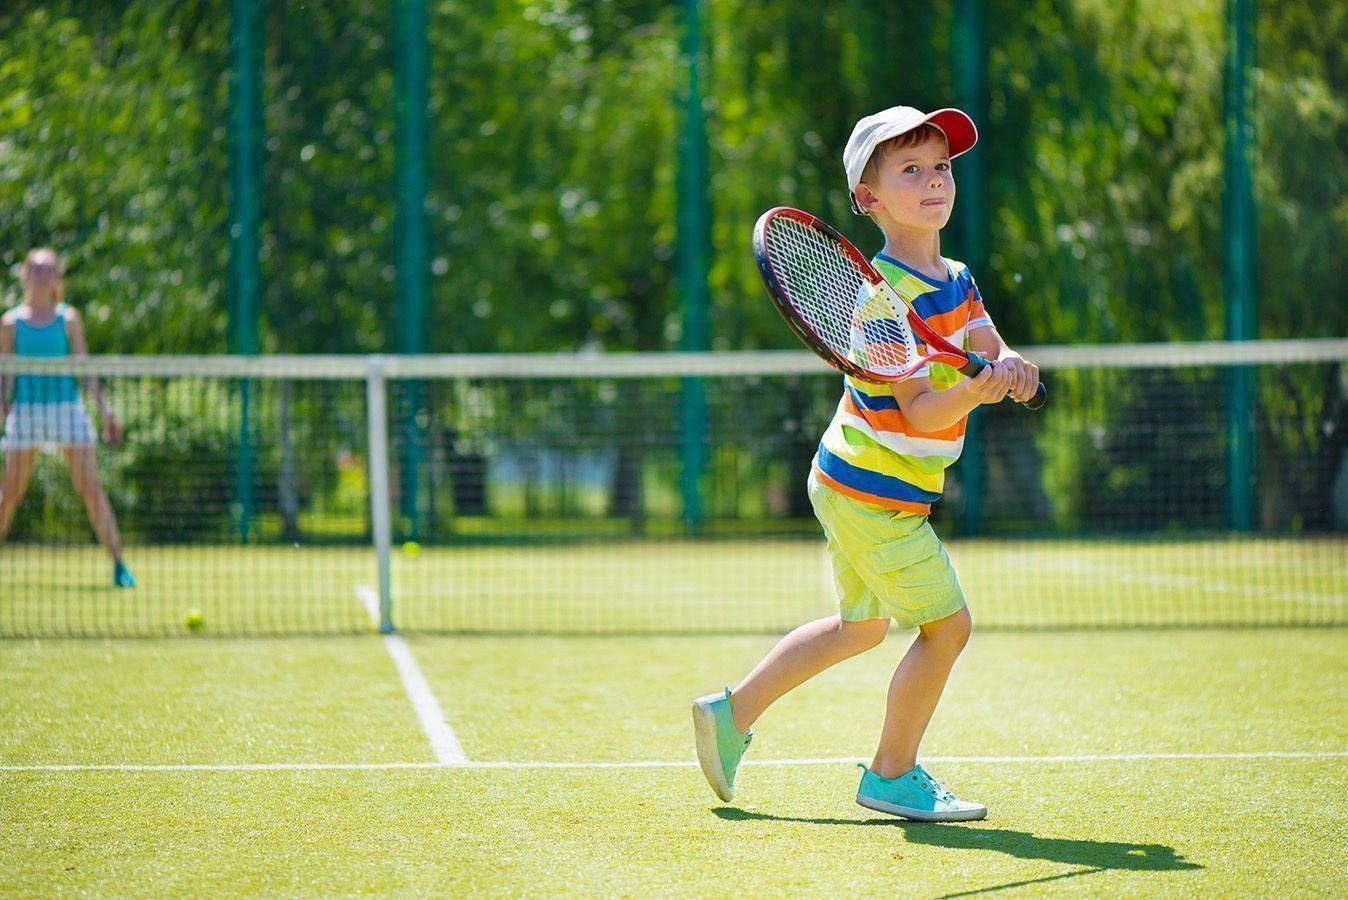 Tennis Can Be A Kind Of A Hard Game For A Small Child To Learn But It Is Awfully Fun And Worth Spending A Bit Of Time Trying T Play Tennis